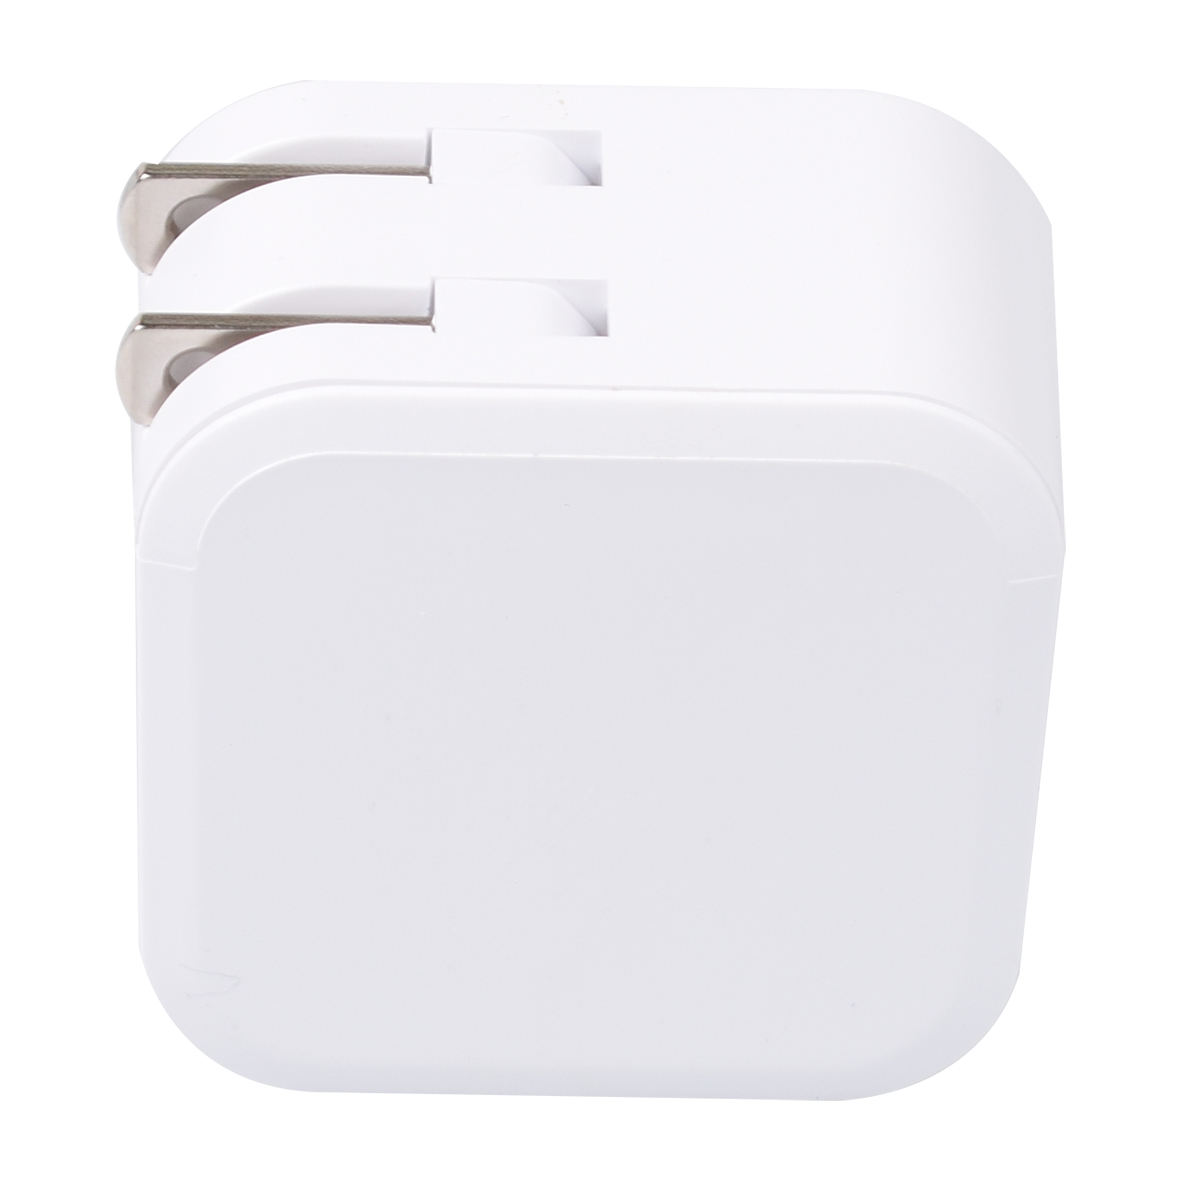 Multi Port USB Wall Charger Fast Charging USB Power Adapter with Cable